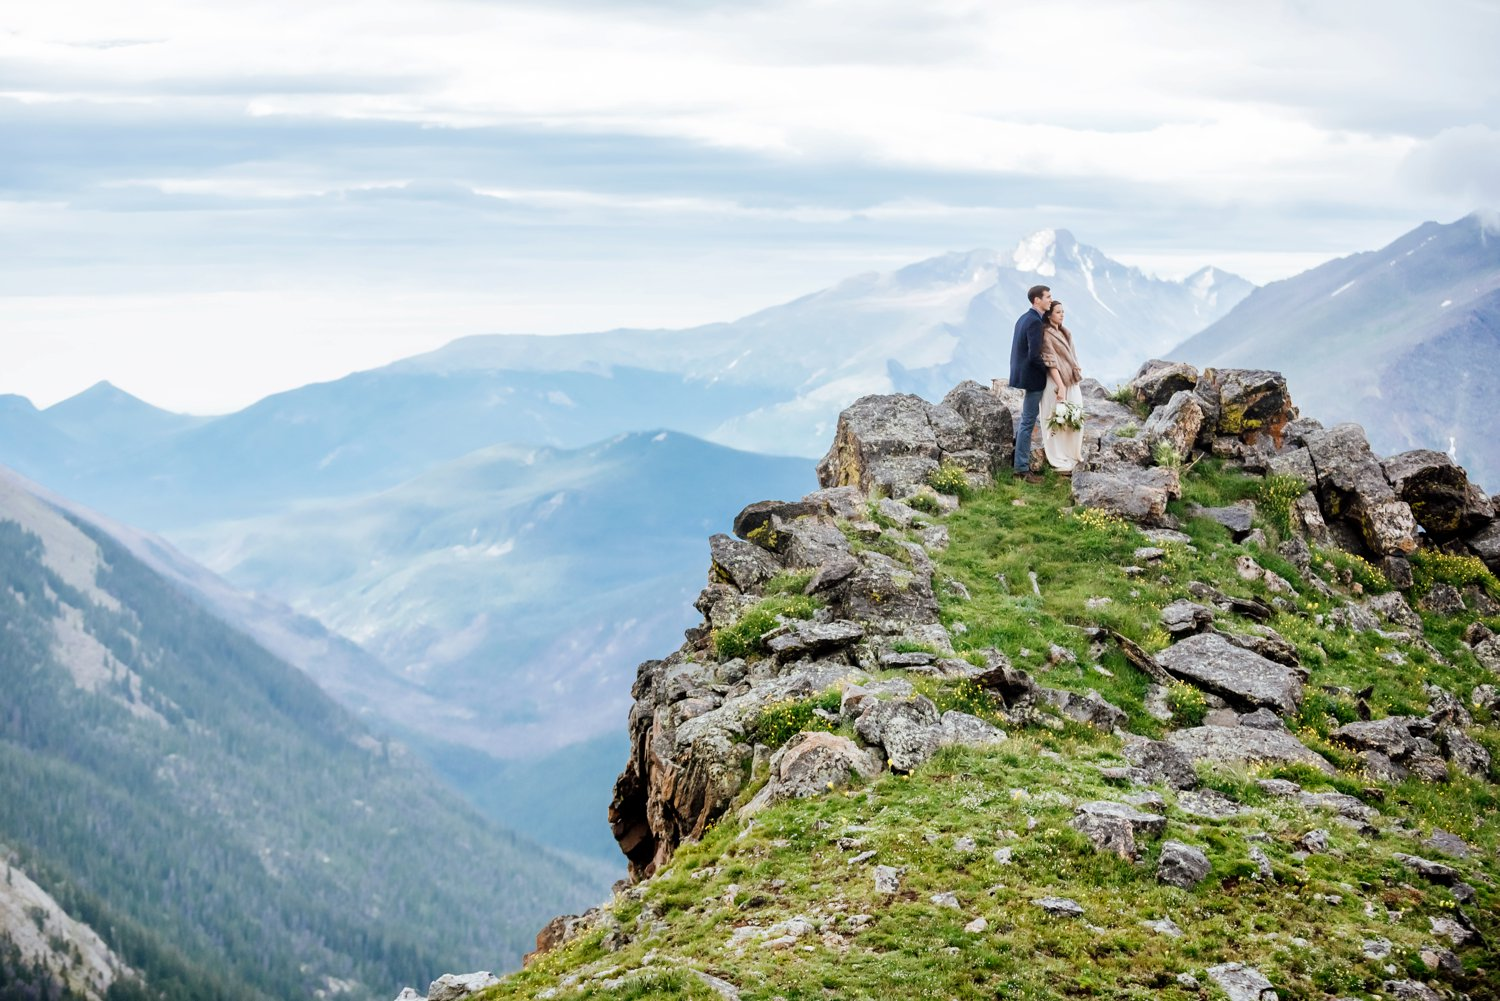 What a beautiful wedding location! Rocky Mountain National Park is so incredible with its breathtaking views. Photo by Maddie Mae Photography